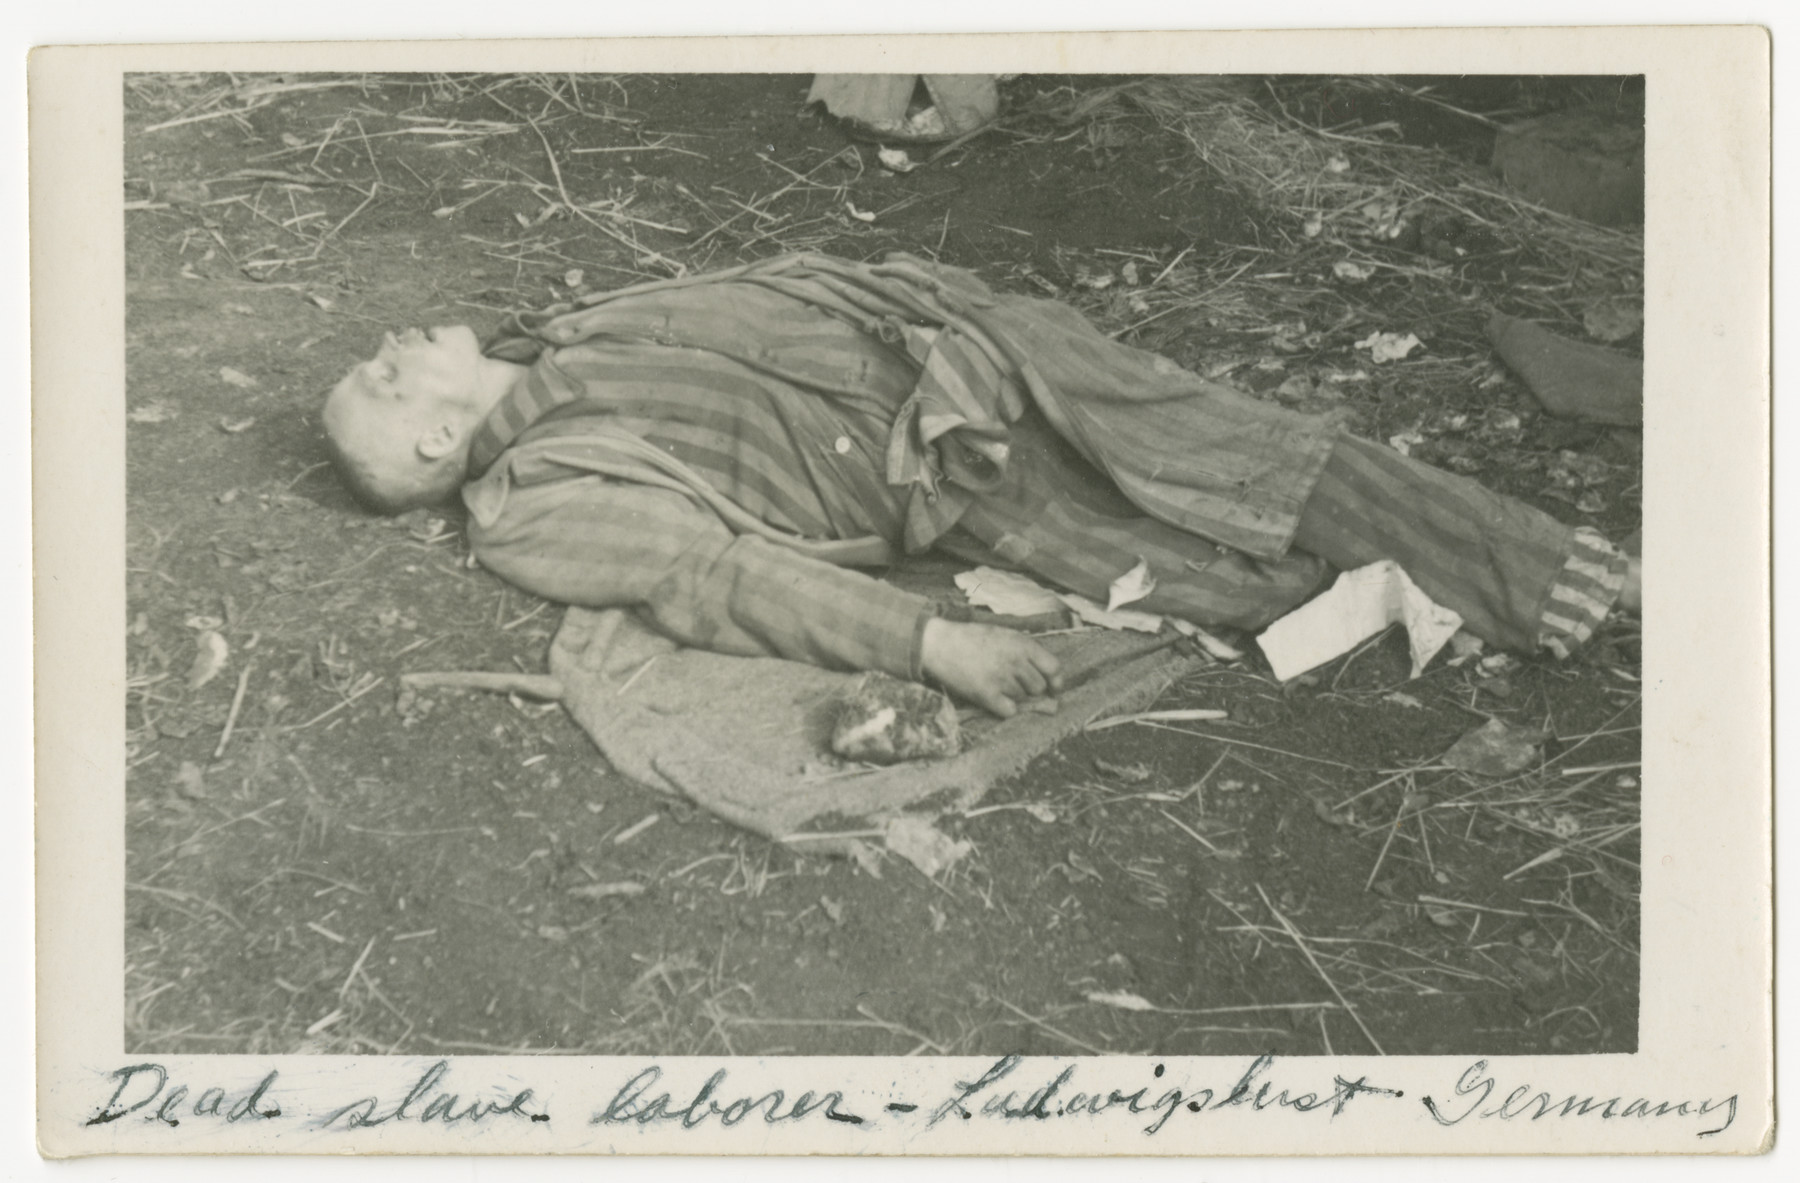 "Close-up of a corpse lying on the grounds of the Woebbelin concentration camp.  The photograph's original caption reads, ""Dead slave laborer - Ludwigslust, Germany"""